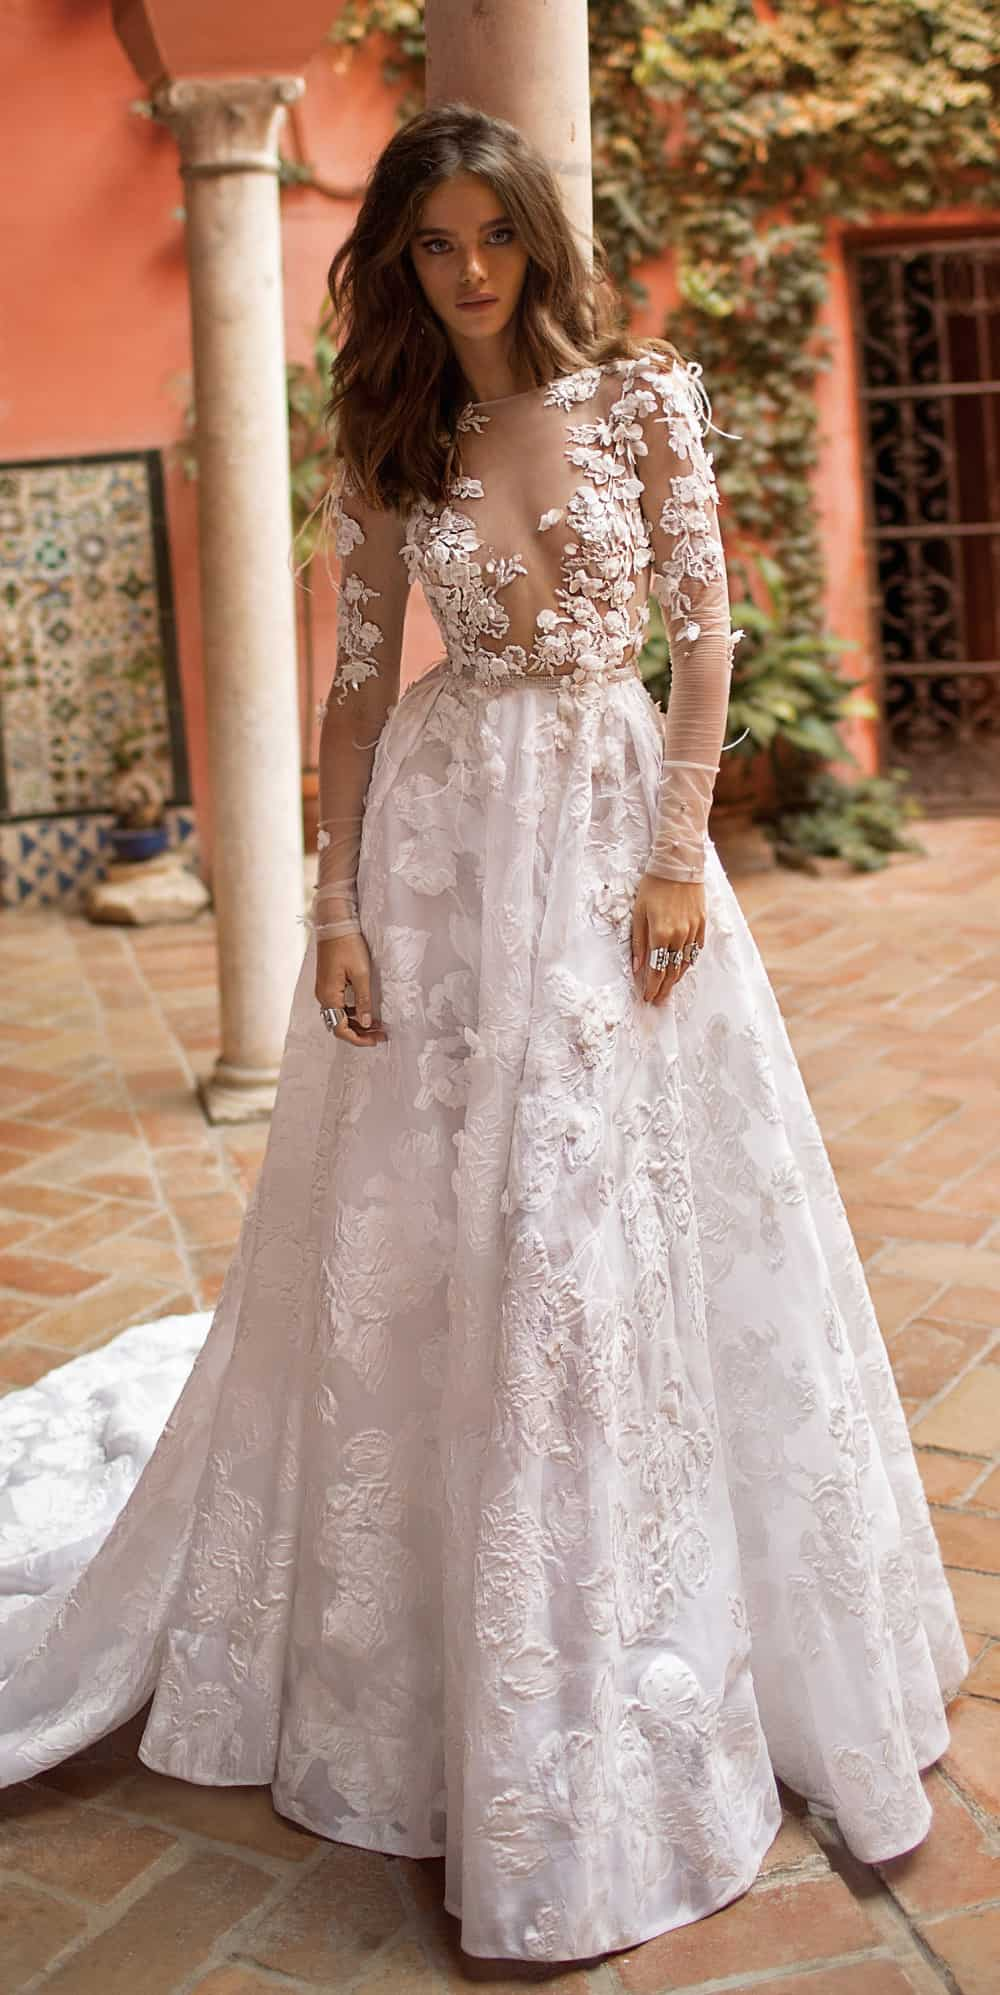 floral embellished berta bridal wedding dress